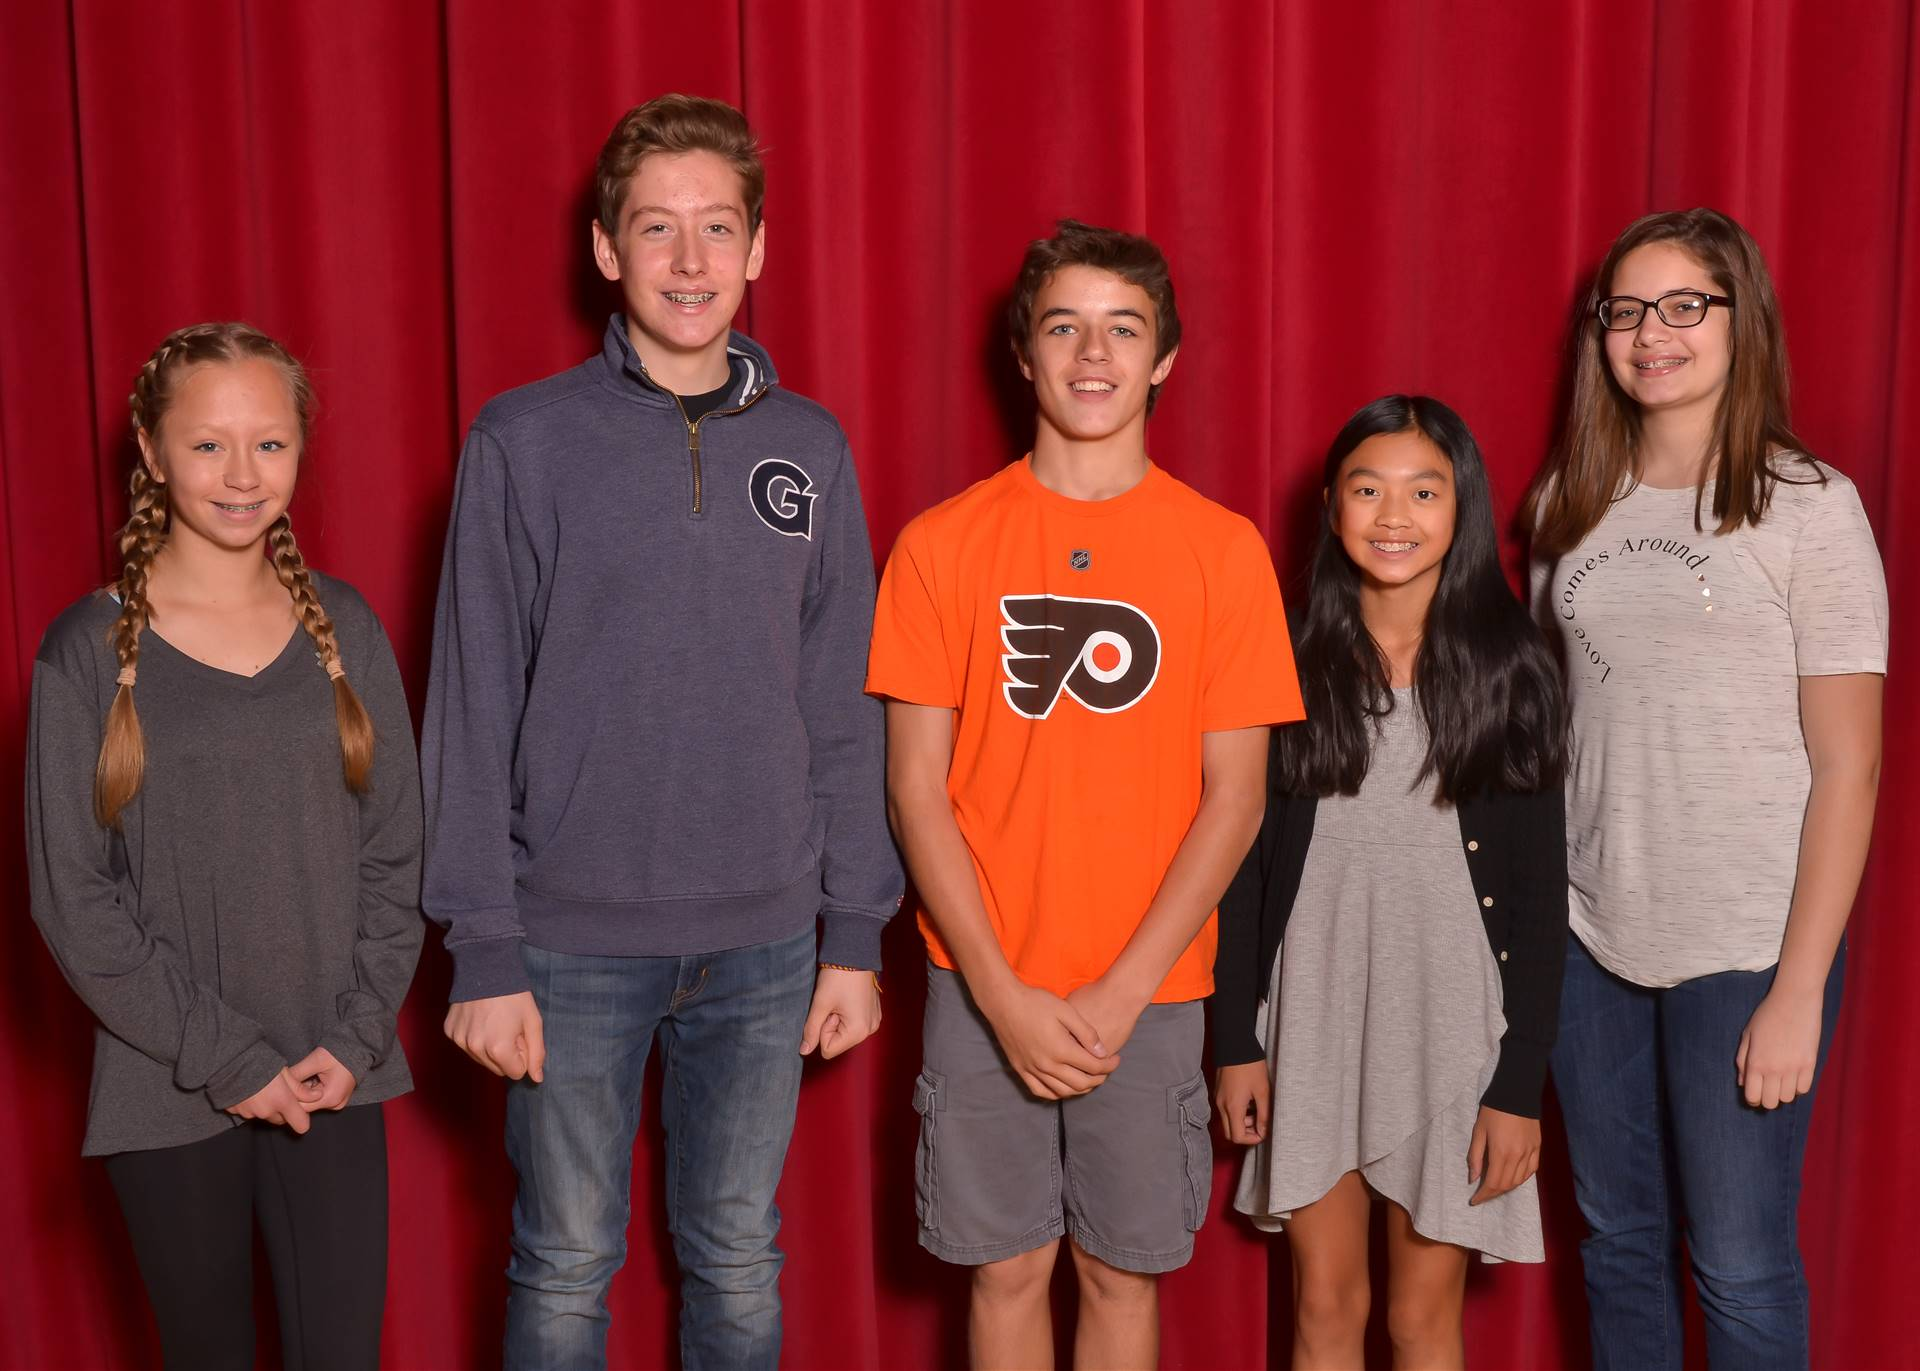 5 8th grade class officers standing together